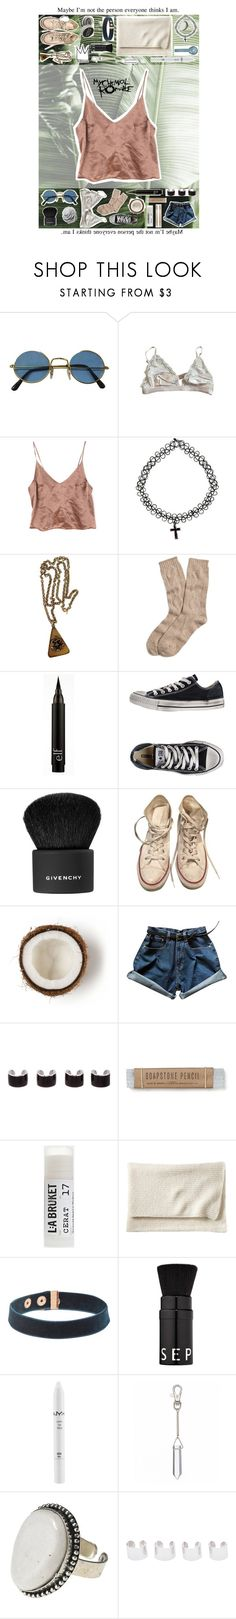 """""""//-5001"""" by pssycho-younicorns ❤ liked on Polyvore featuring beauty, STELLA McCARTNEY, Trifari, Brooks Brothers, Converse, Givenchy, Stila, Maison Margiela, Toast and Serena & Lily"""